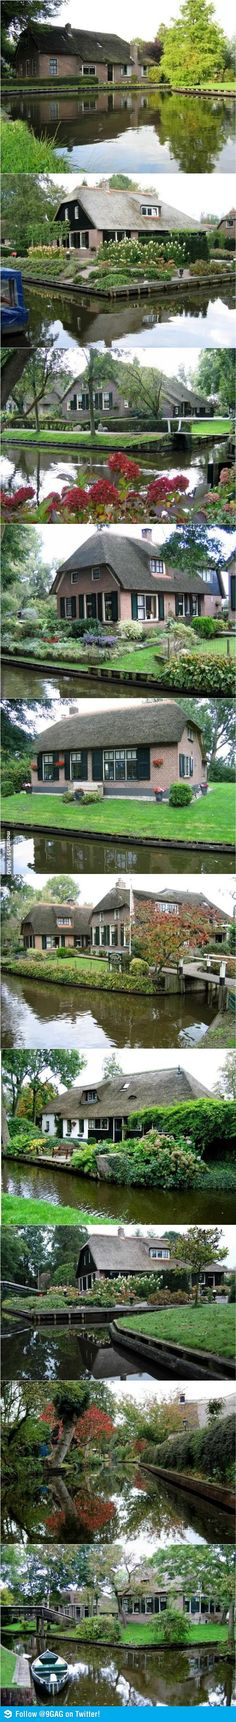 "Giethoorn, Holland.....there is no motor traffic -- all homes are connected by canals and they use ""whisper boats"" to travel these water ways."